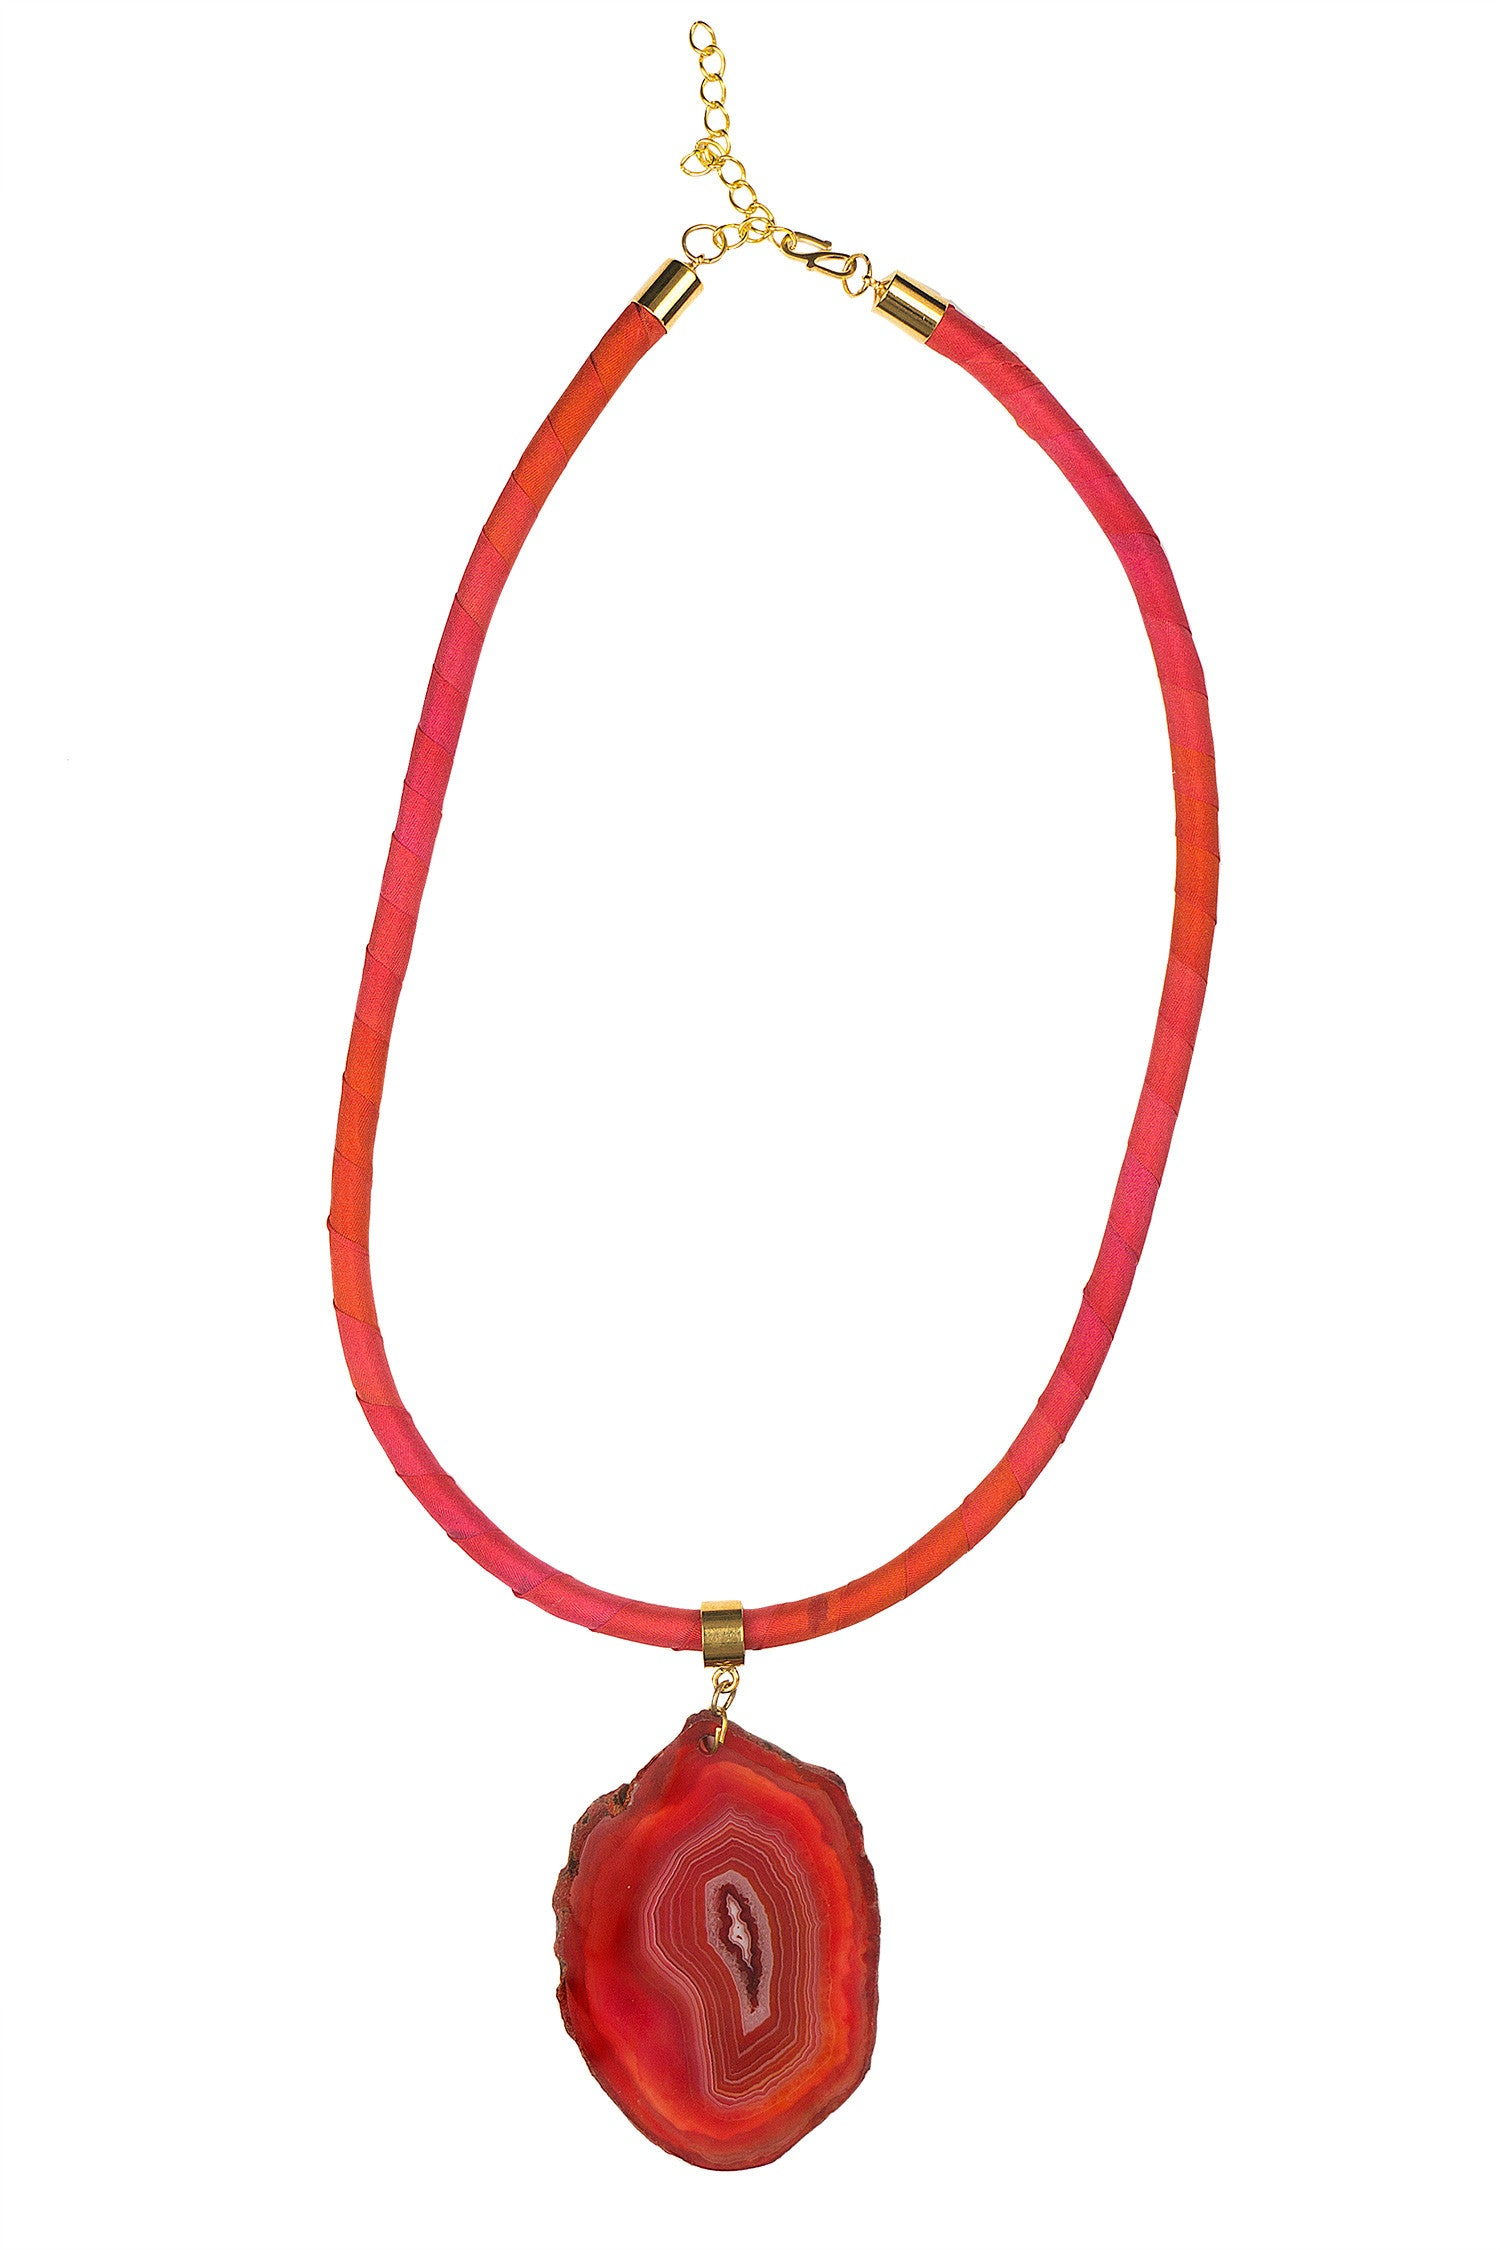 Tarocco necklace